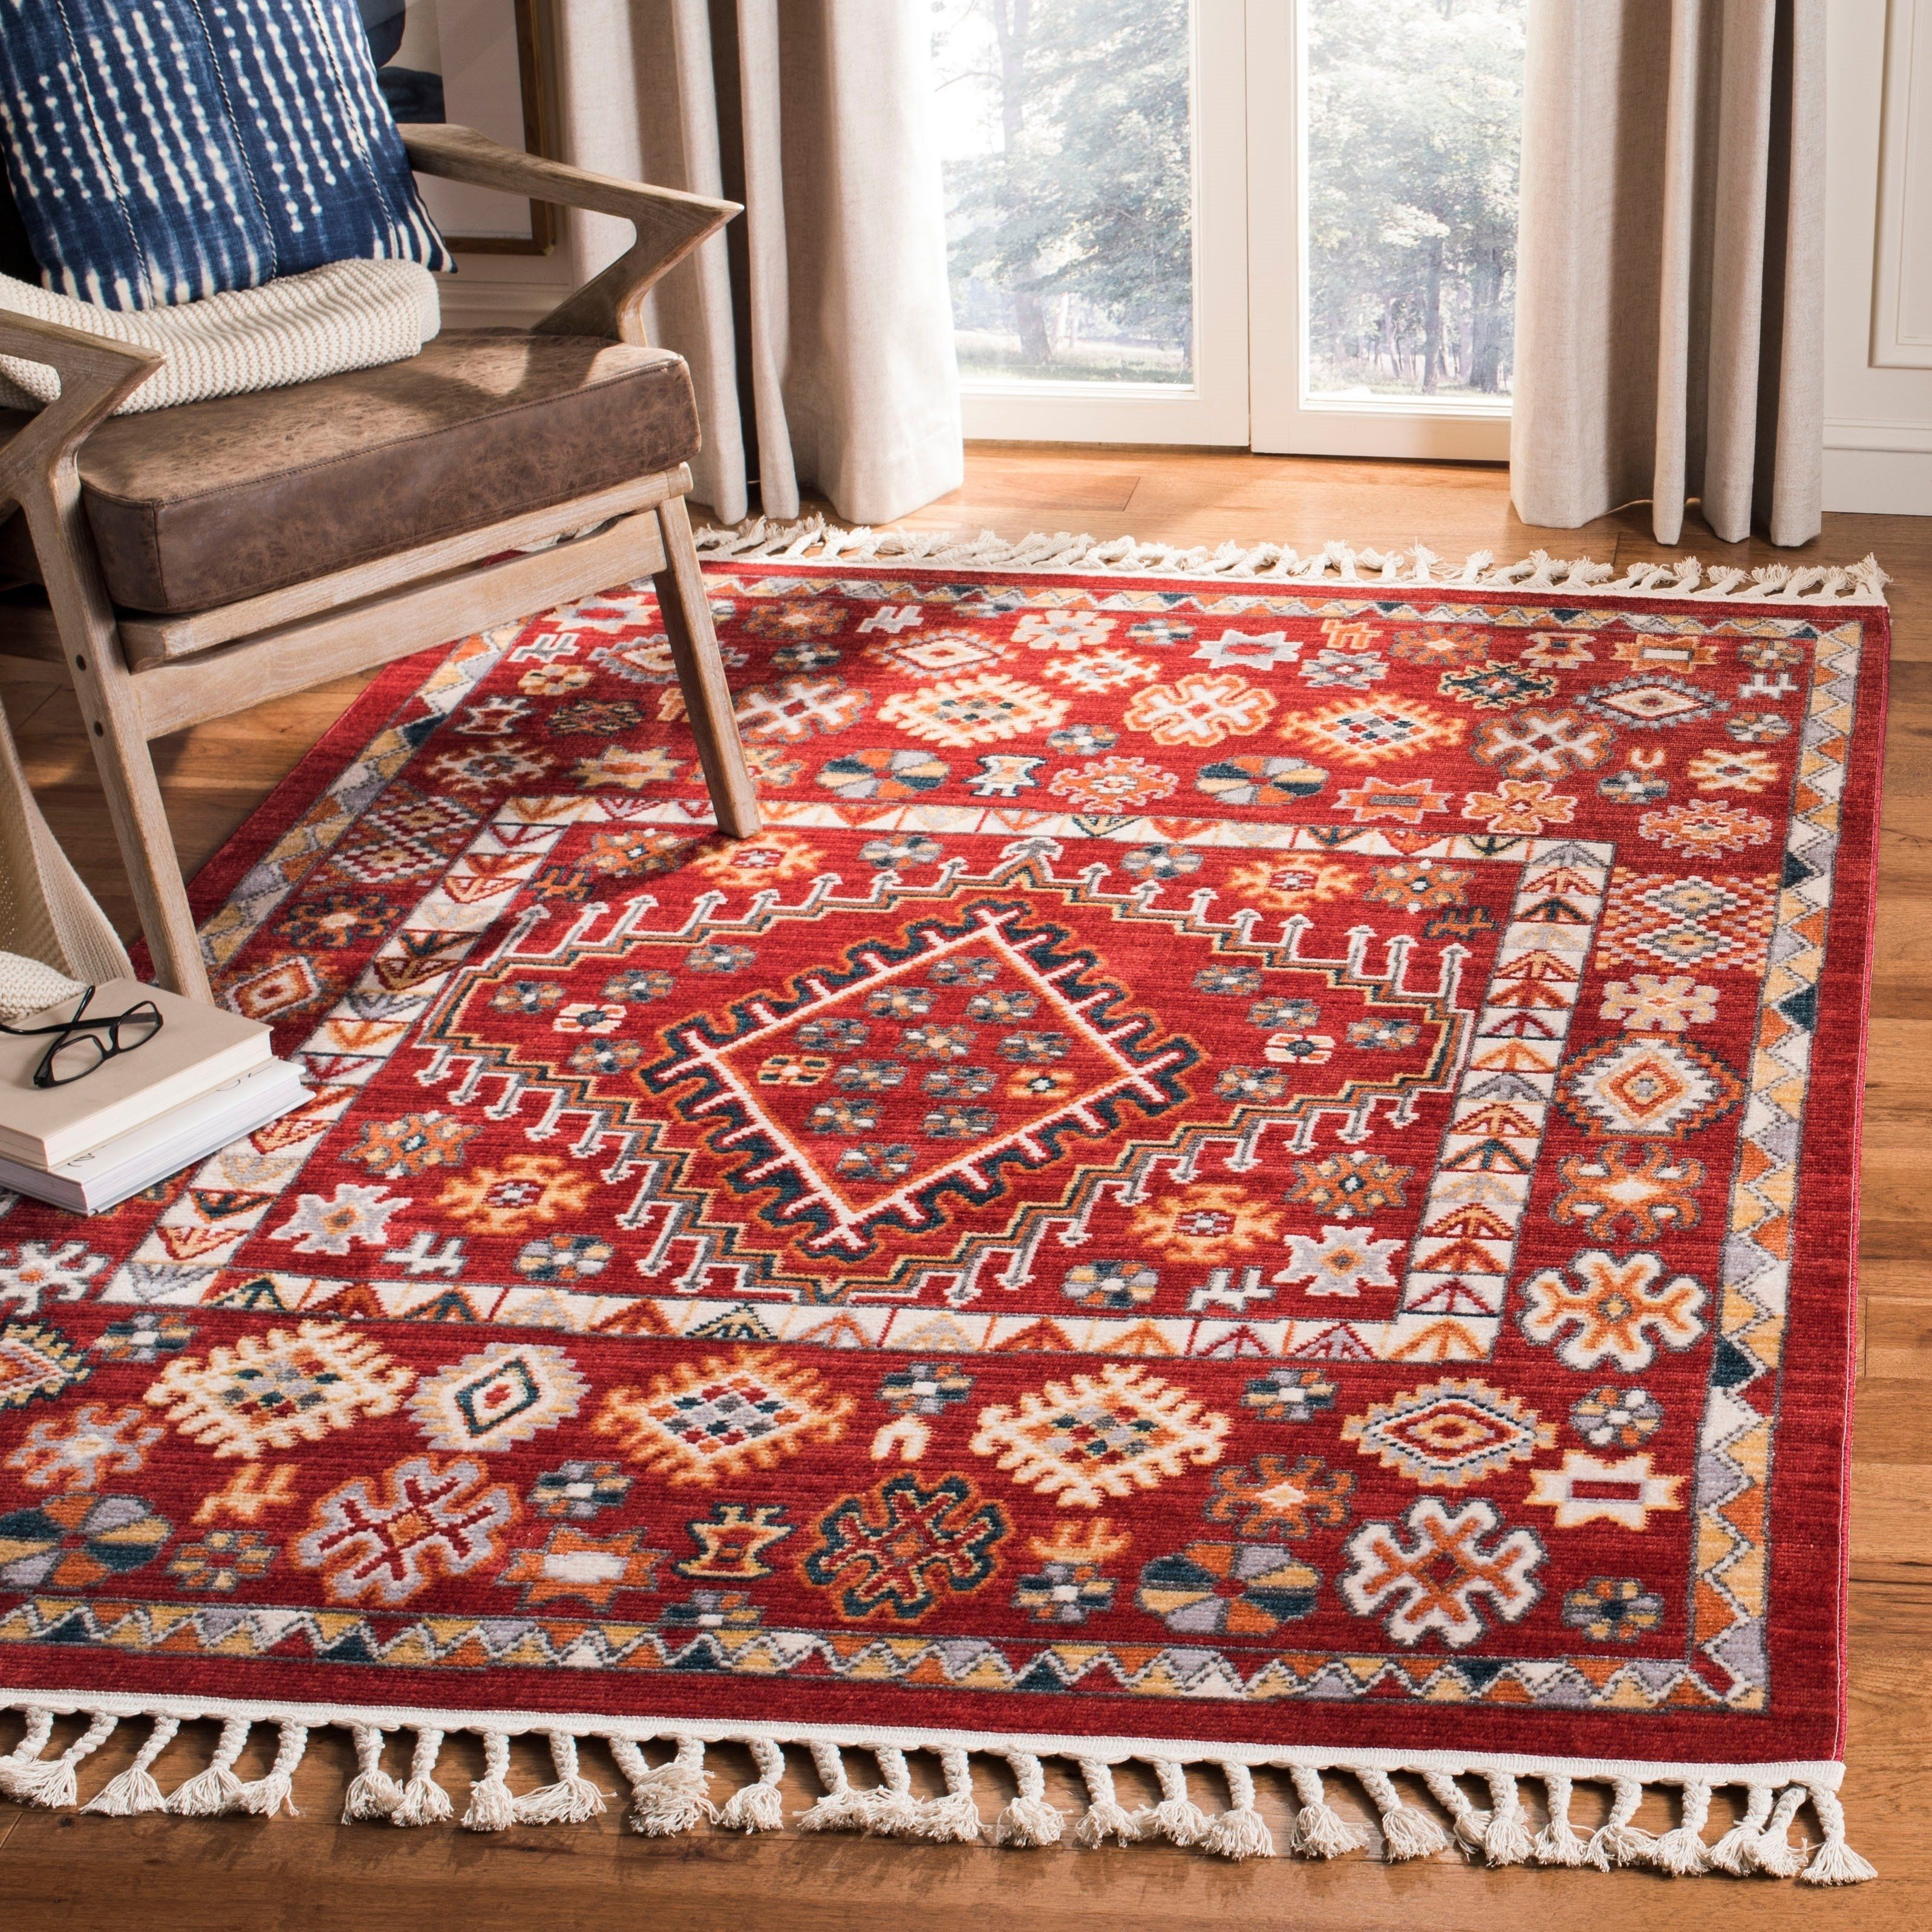 Safavieh Farmhouse Bohemian Eclectic Red Ivory Polyester Tassel Area Rug 9 X 12 Polyester Rugs Red Area Rug Area Rugs